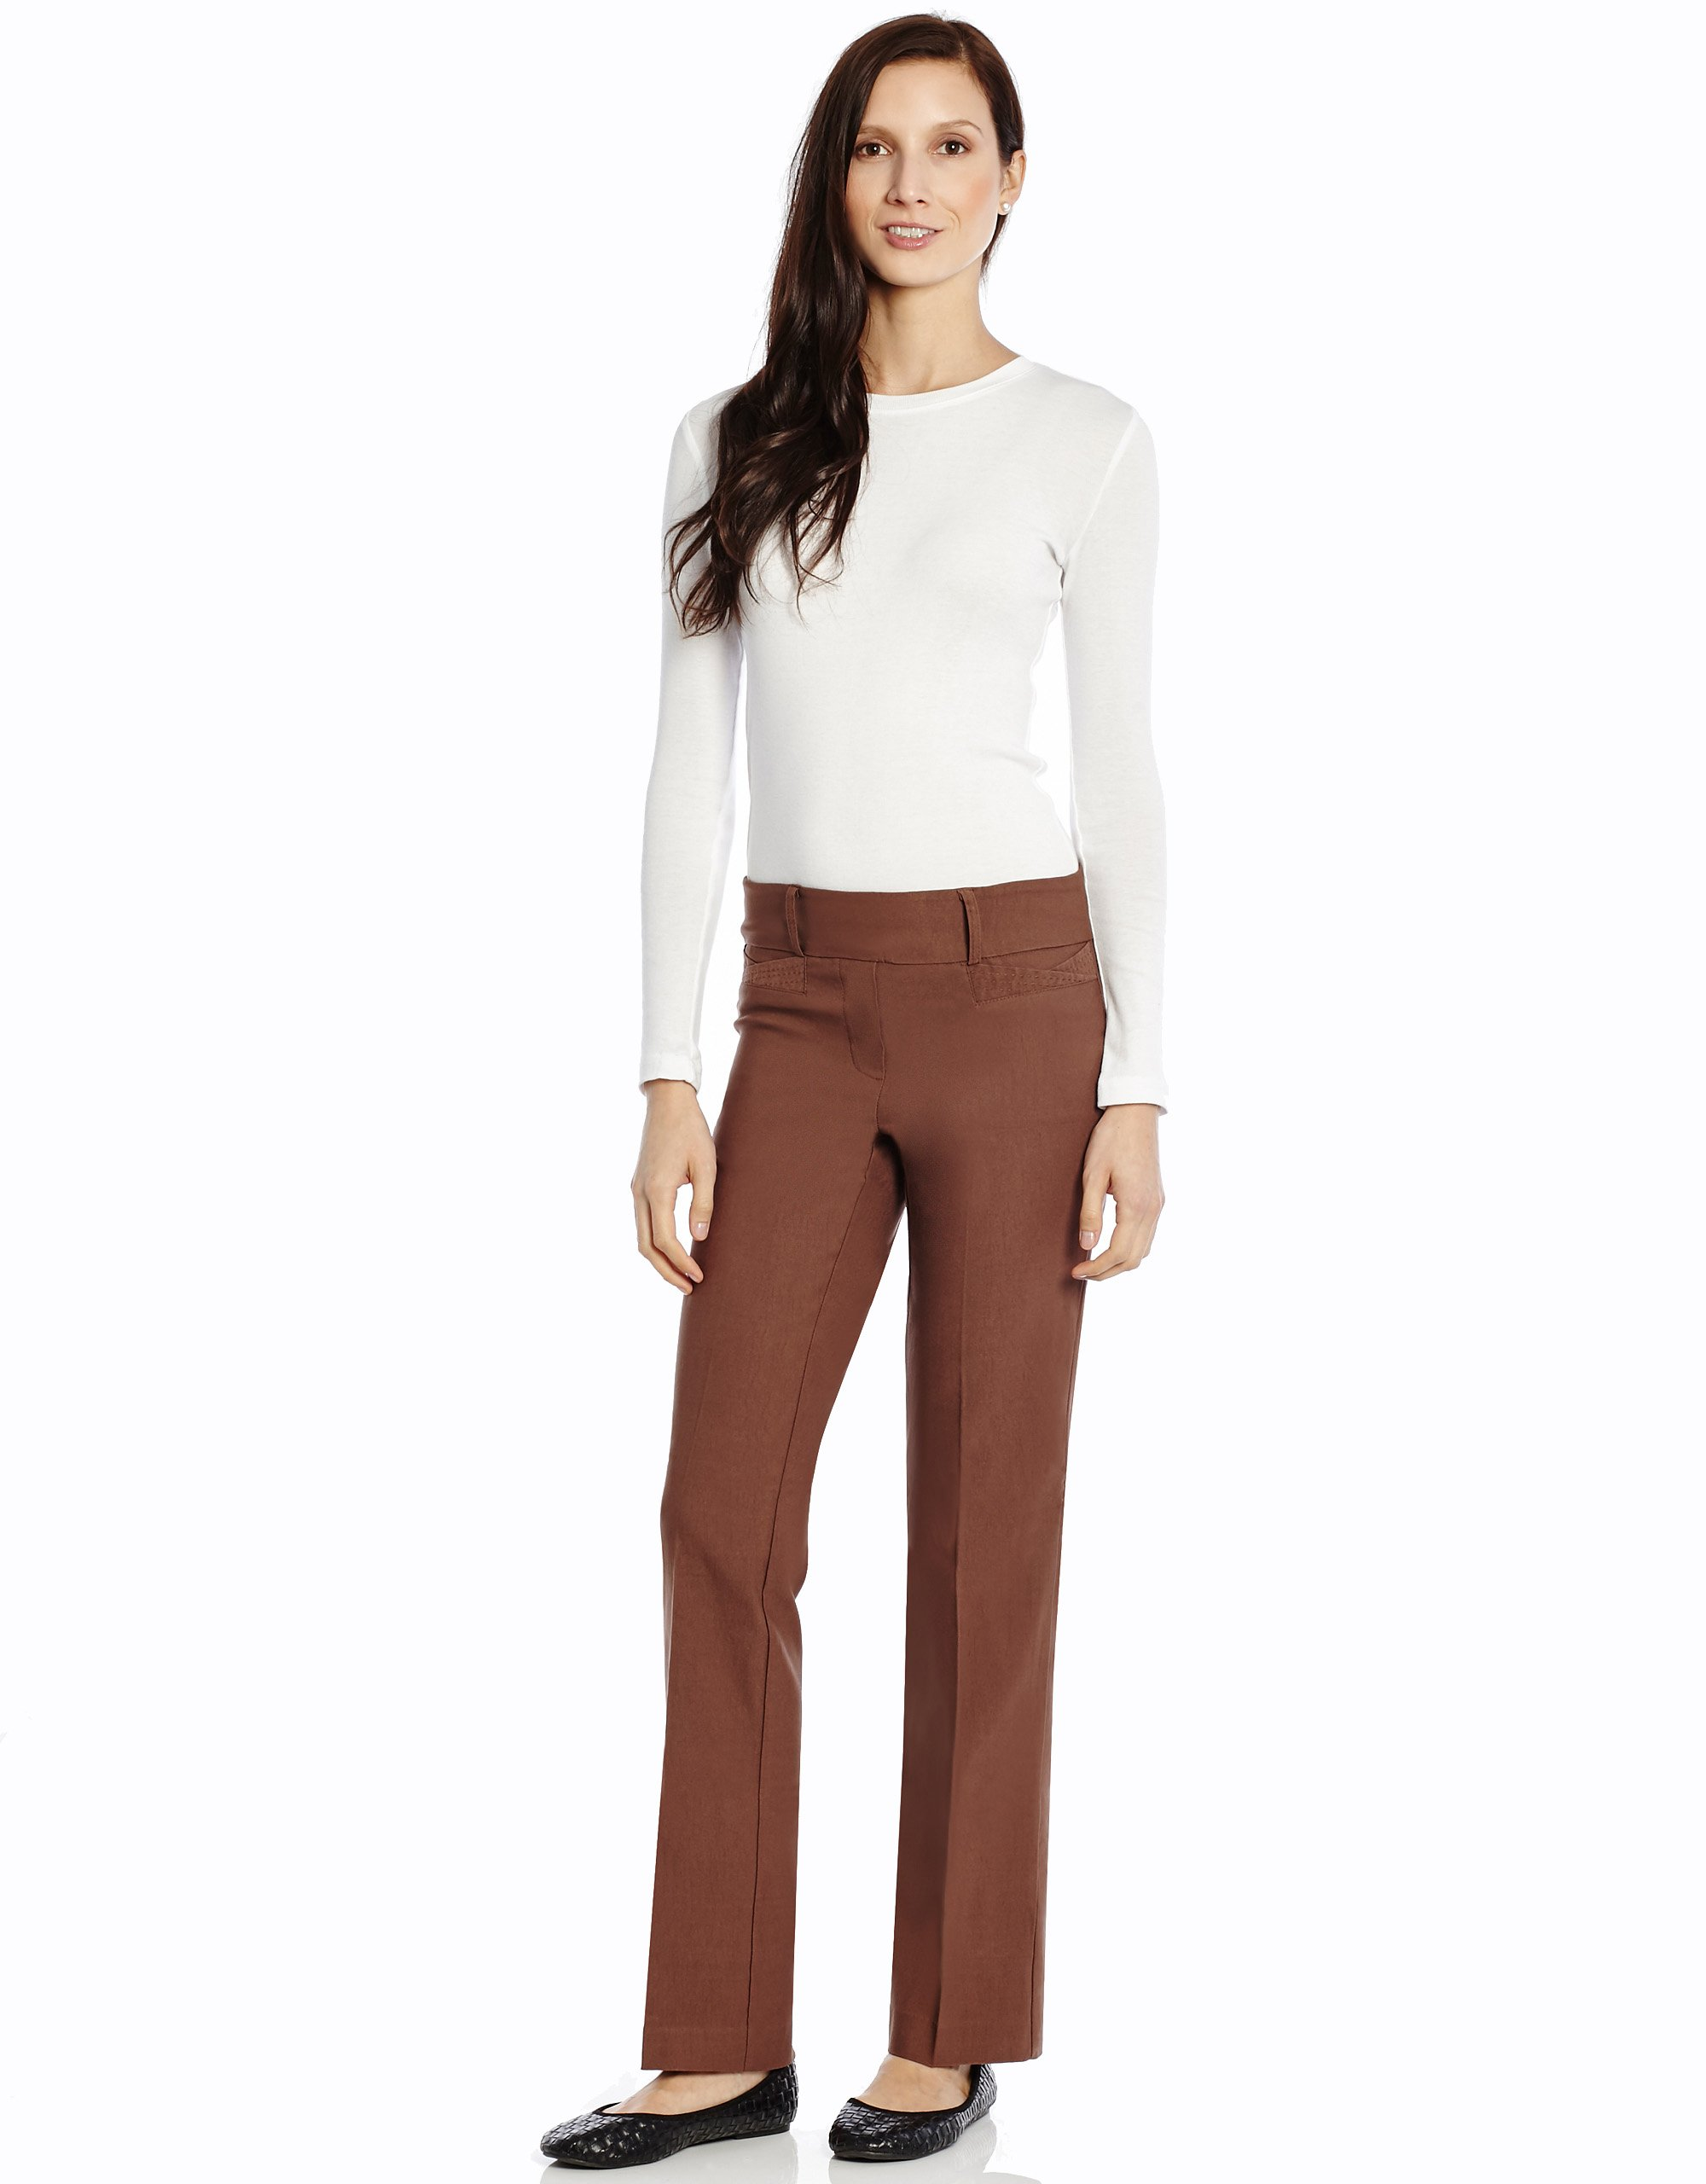 4-18 Leveret Women/'s Taupe Stretchable Slight Boot Cut Comfort Pant Pull On